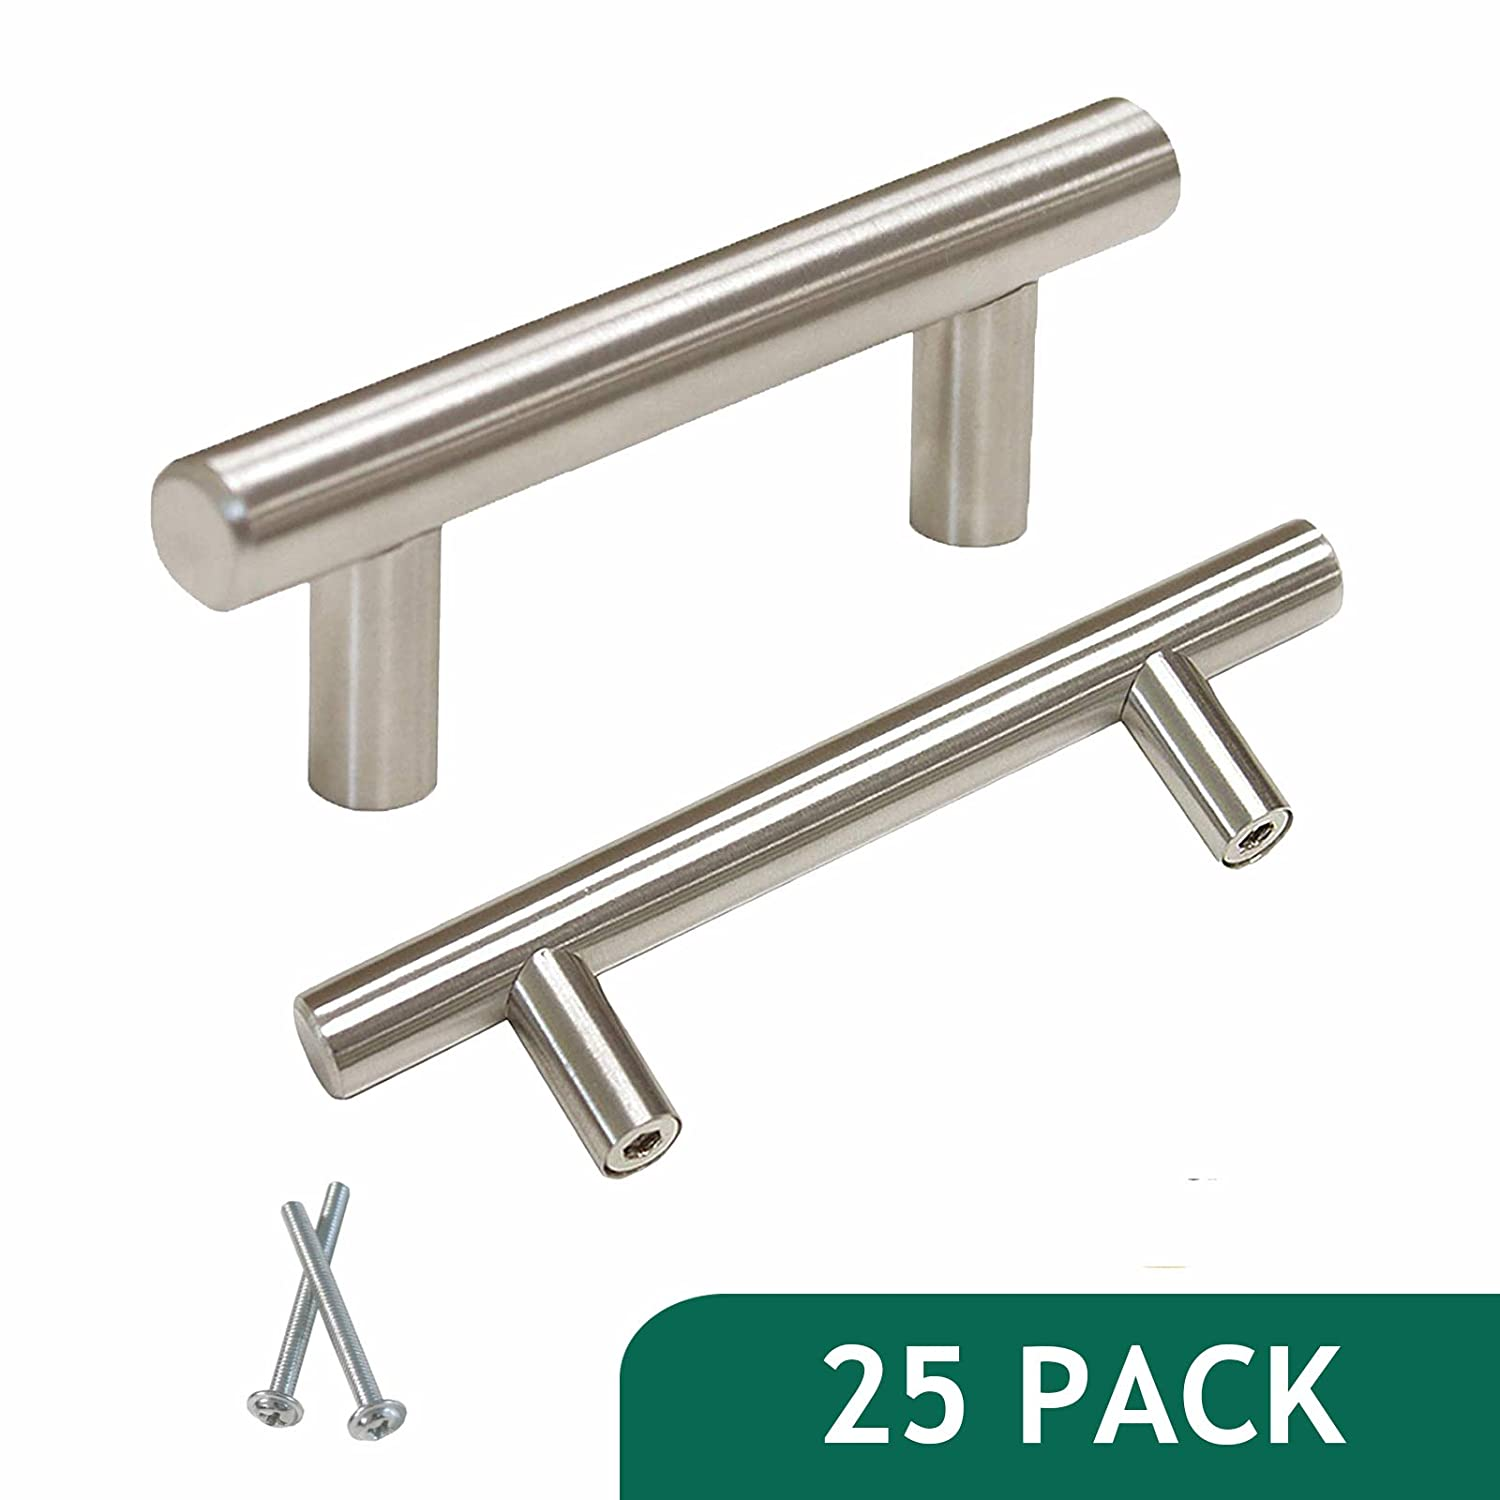 Probrico 3 inch Hole Centers Euro T Bar Cabinet Pulls Stainless Steel Kitchen Drawer Handles Wholesale 25 Pack